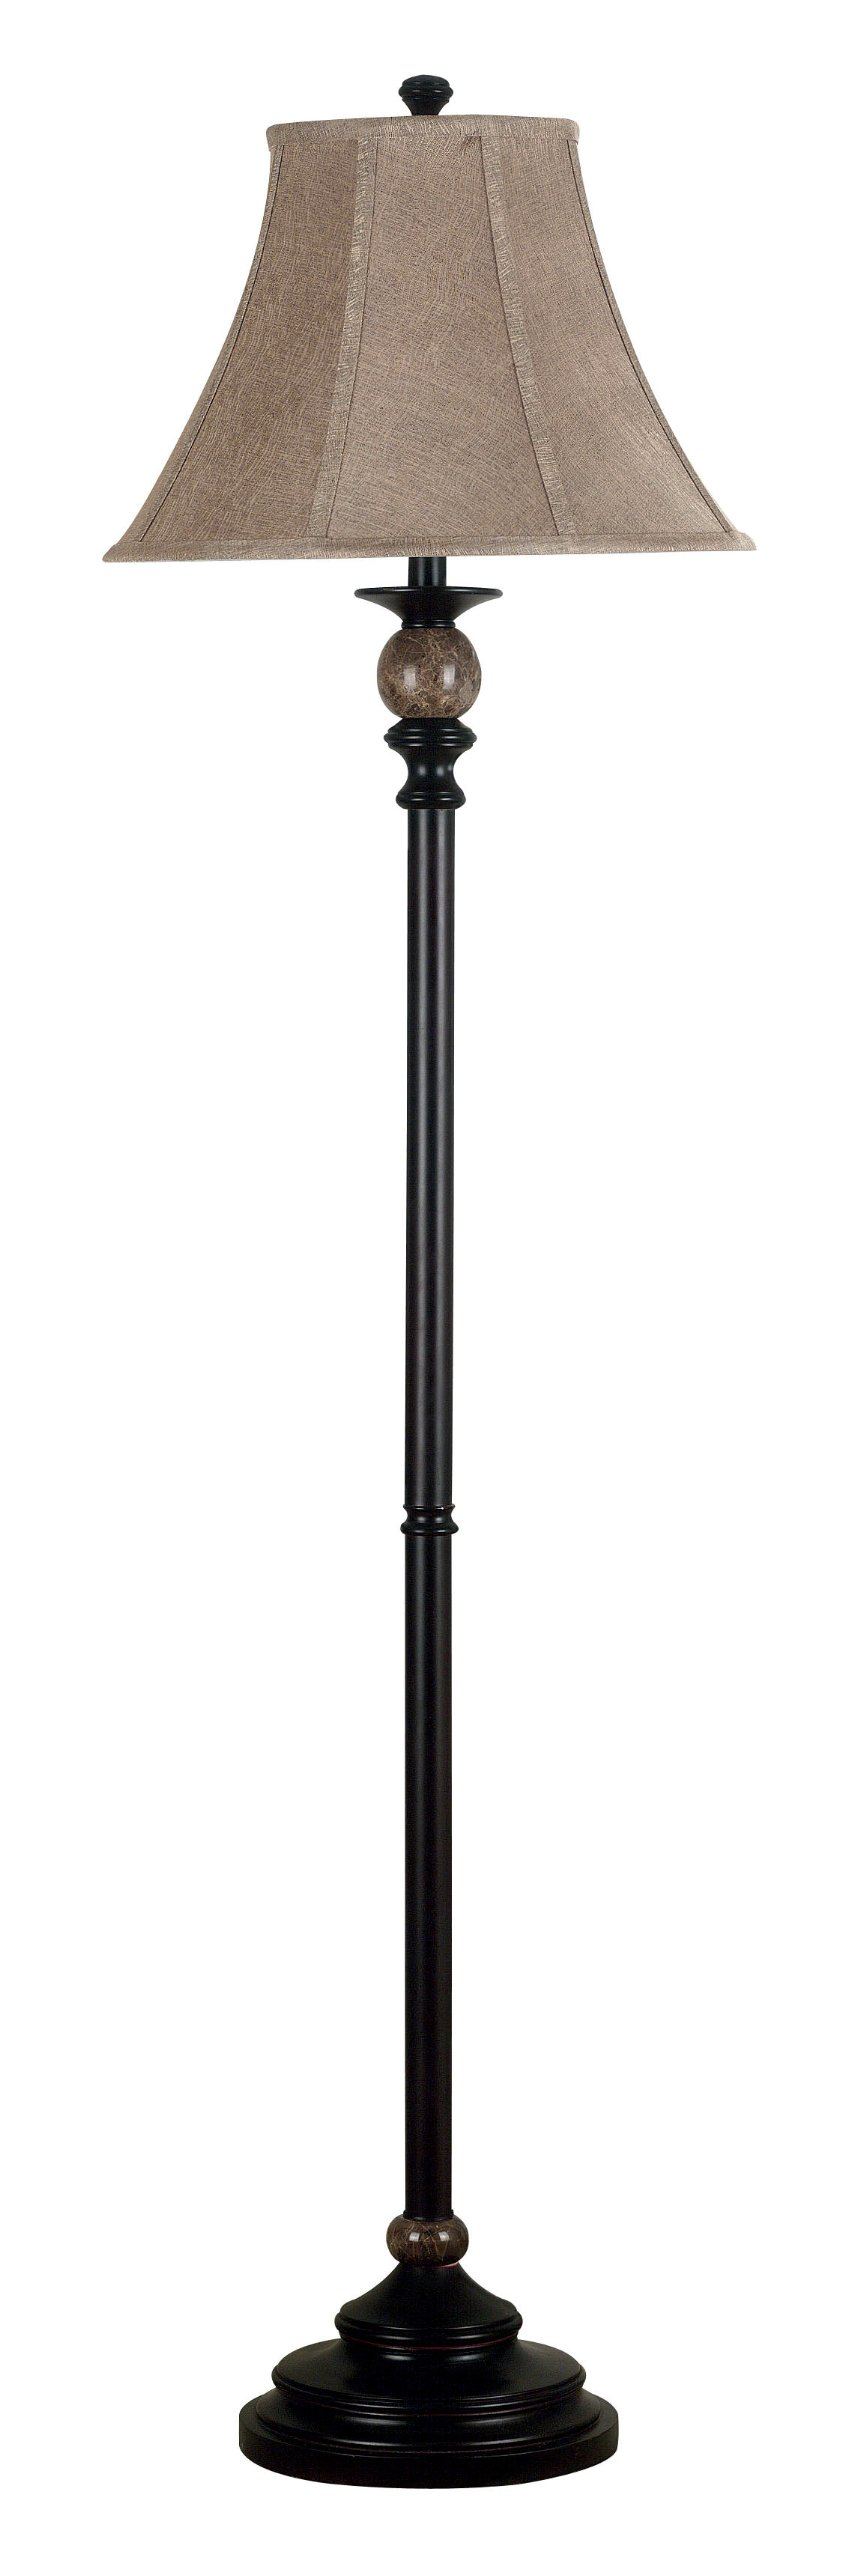 Kenroy Home 20631ORB Plymouth Floor Lamp, Oil Rubbed Bronze